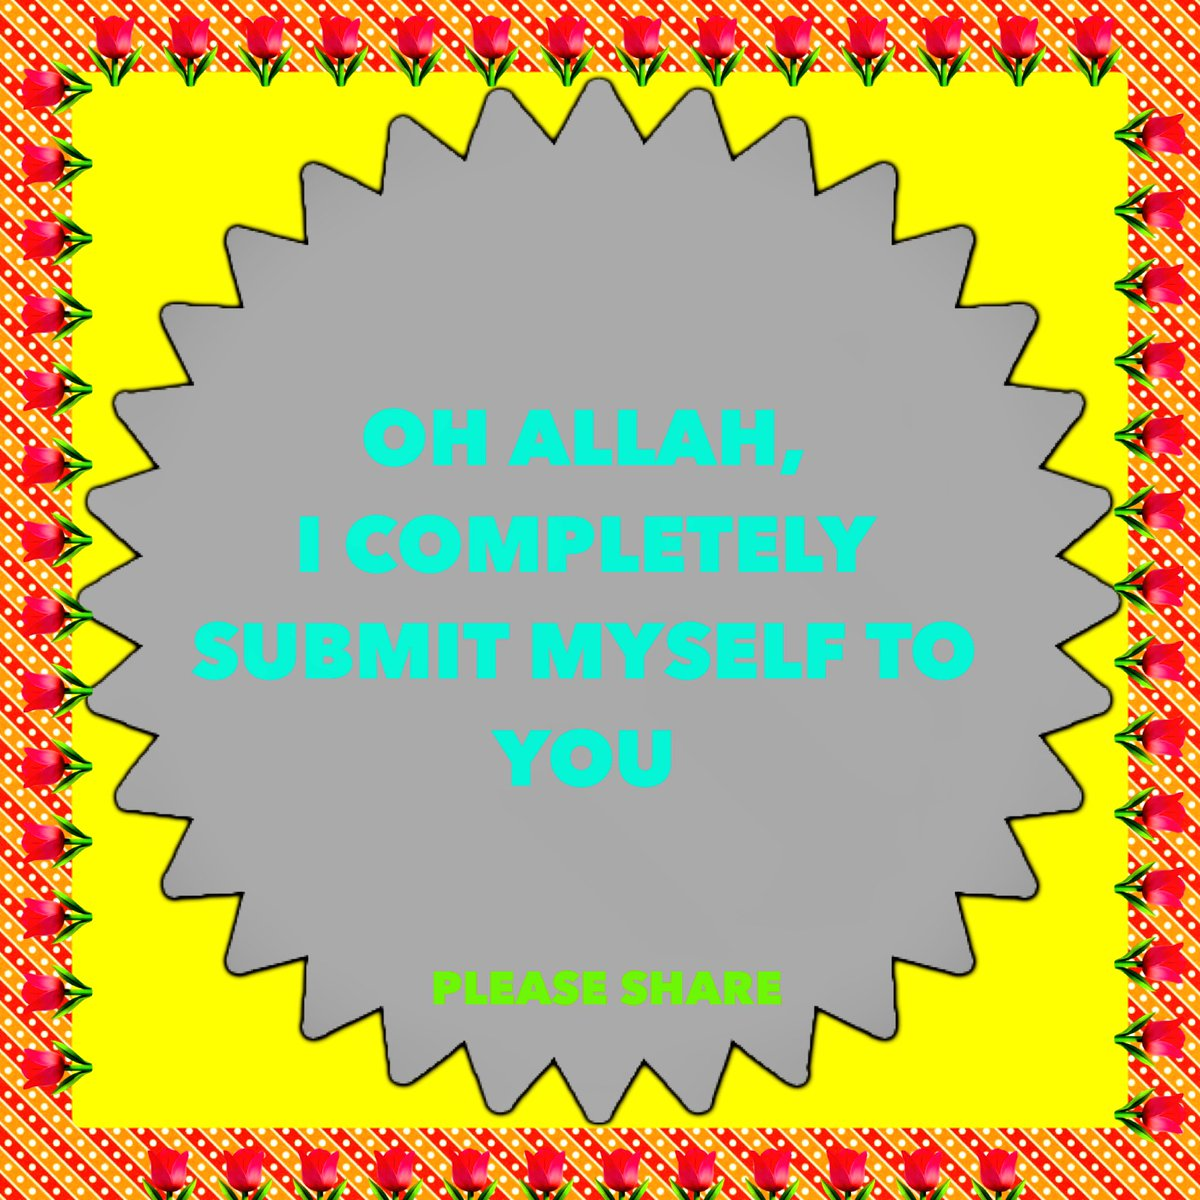 OH #ALLAH, I COMPLETELY SUBMIT MYSELF TO YOU  #Alhamdulillah @arewashams<br>http://pic.twitter.com/tusLKvY10n